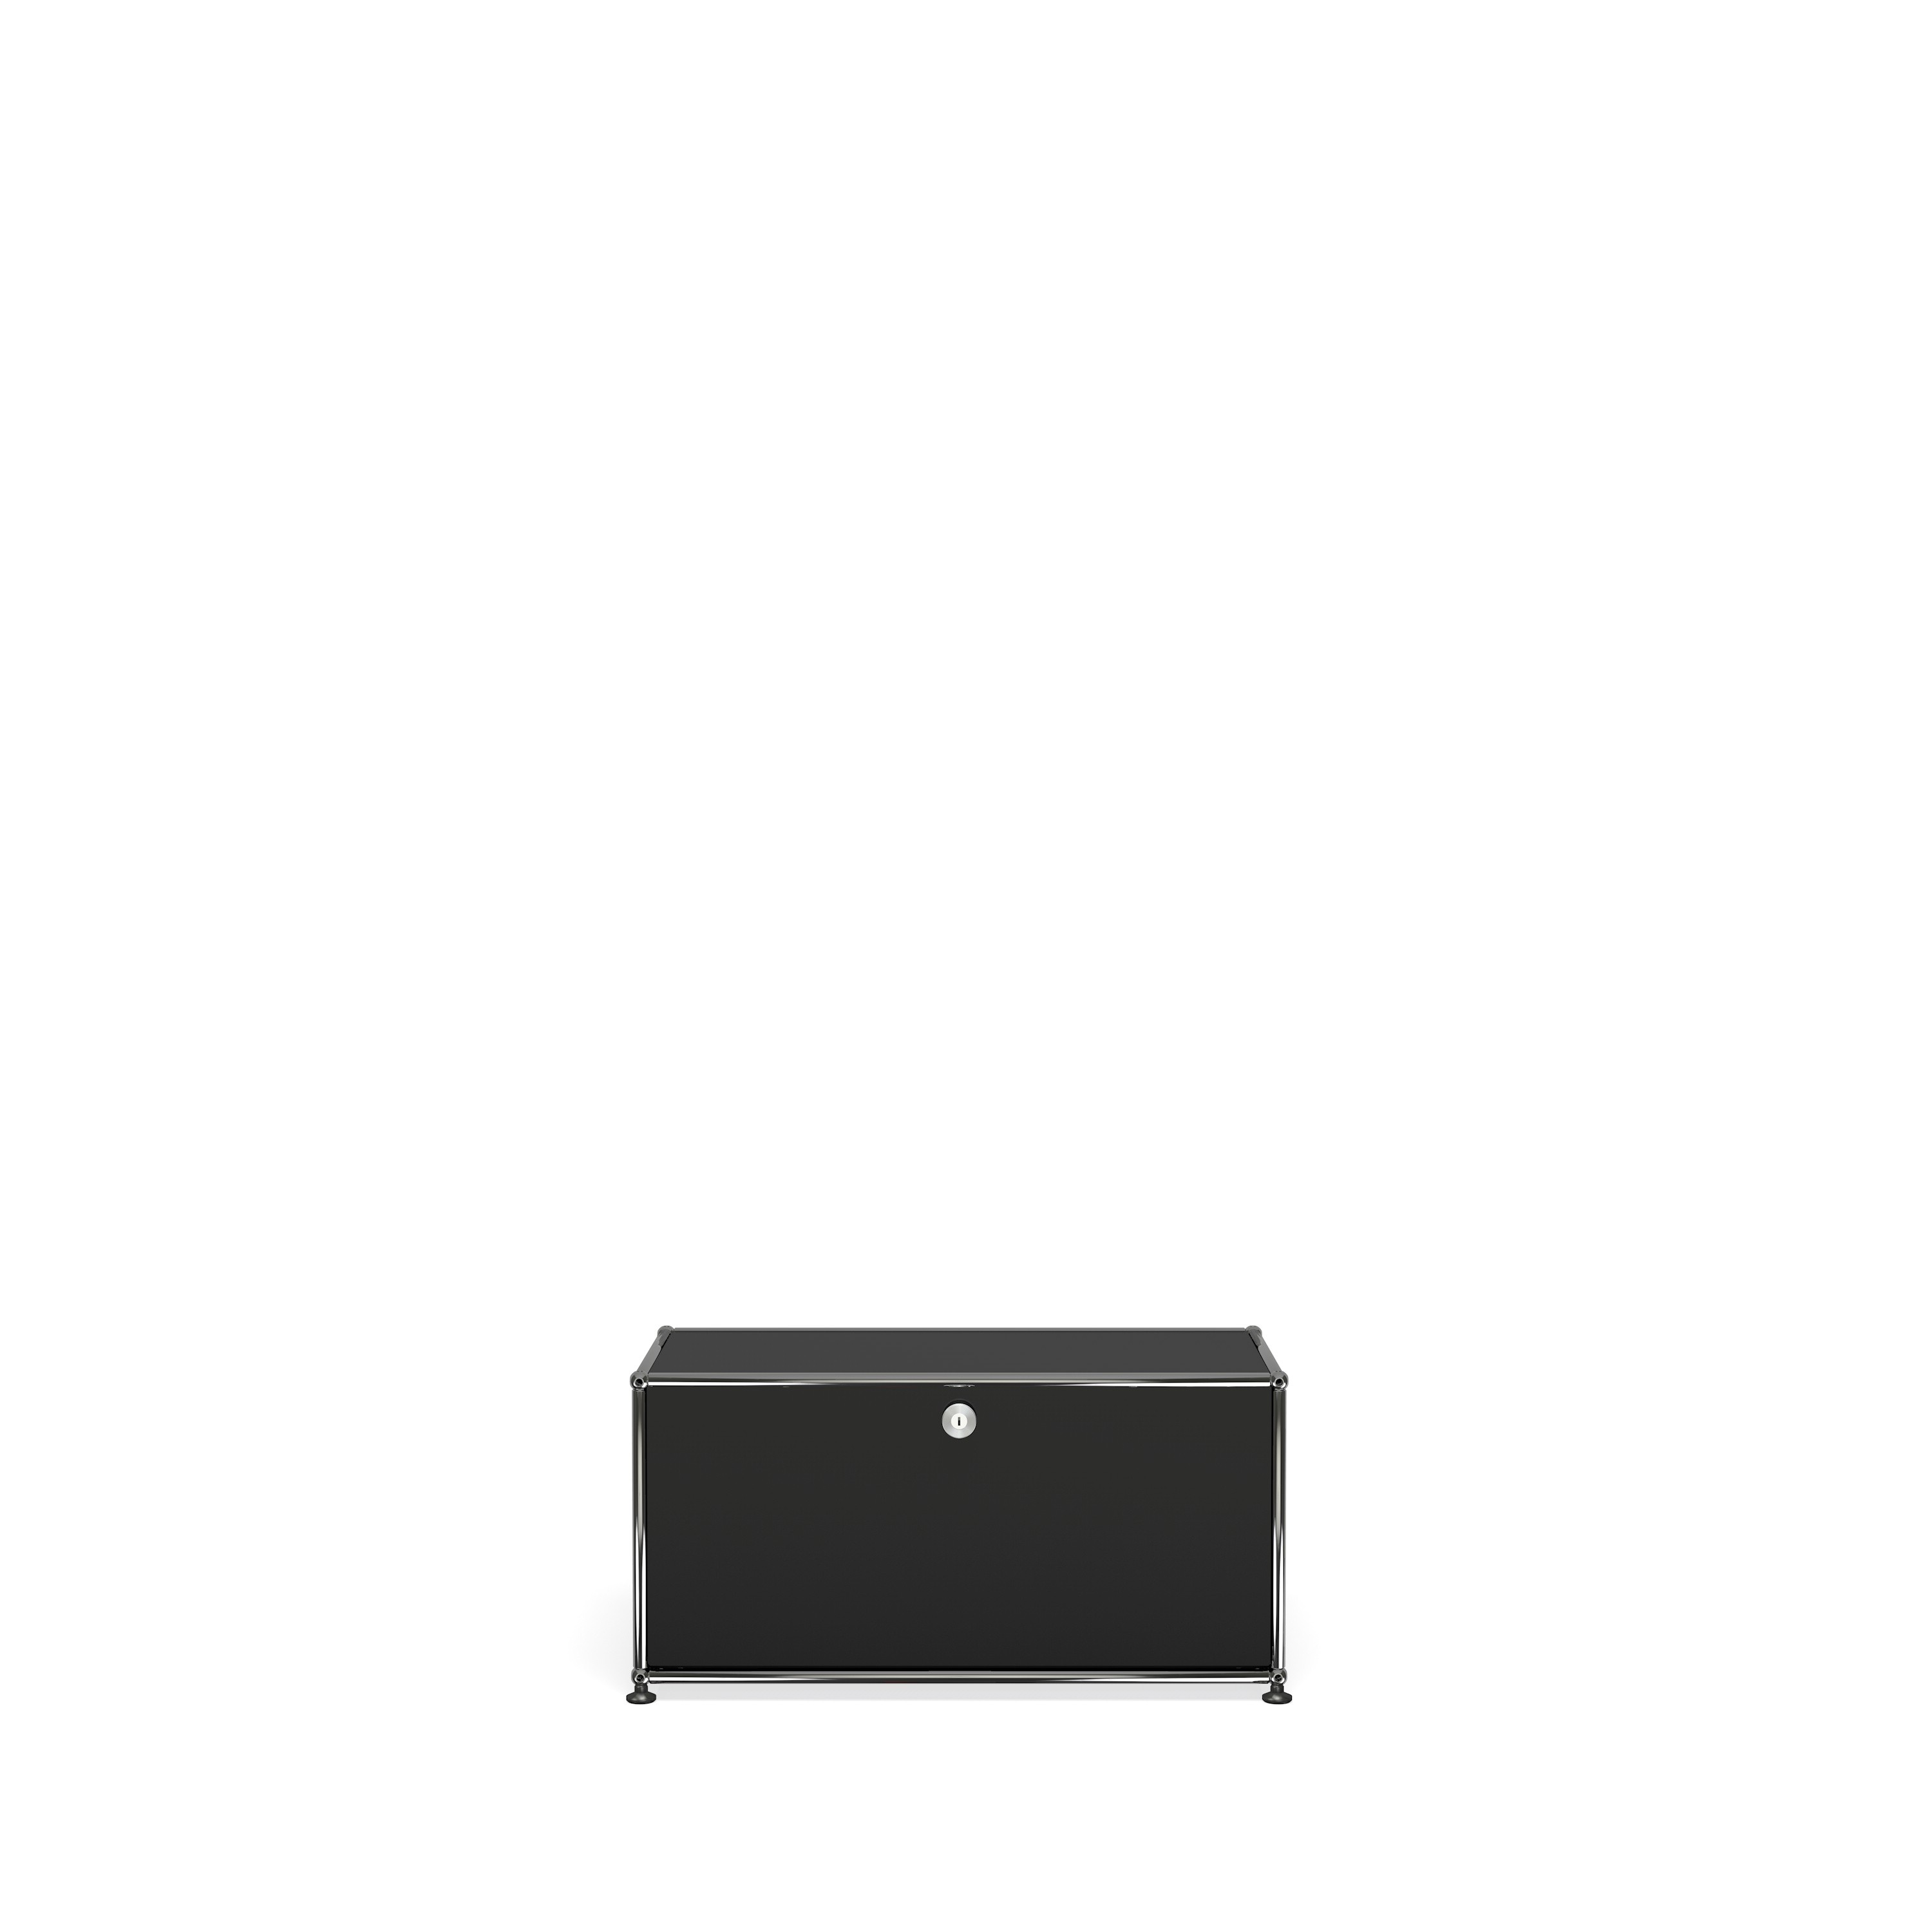 petit meuble de rangement usm haller m10 noir graphite. Black Bedroom Furniture Sets. Home Design Ideas